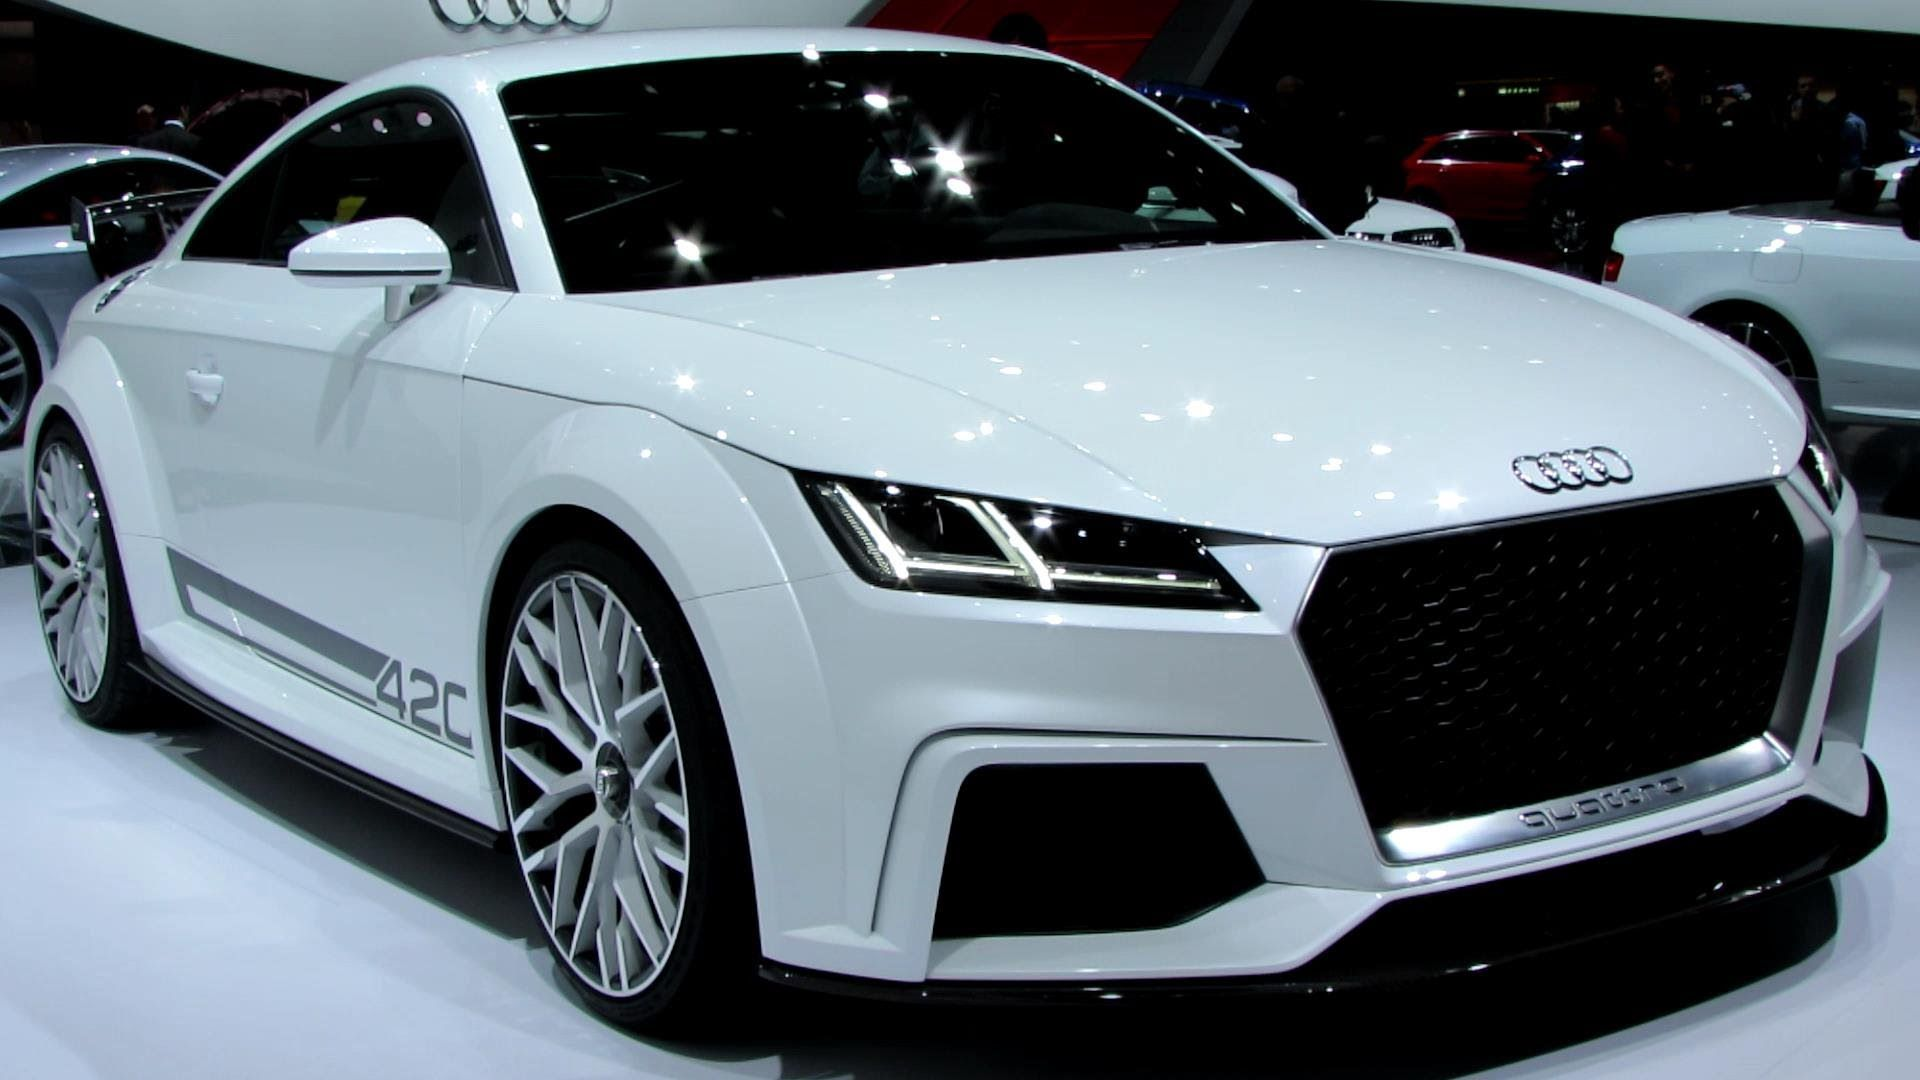 Audi TT Quattro Sport Exterior And Interior Walkaround - Small sports cars 2015